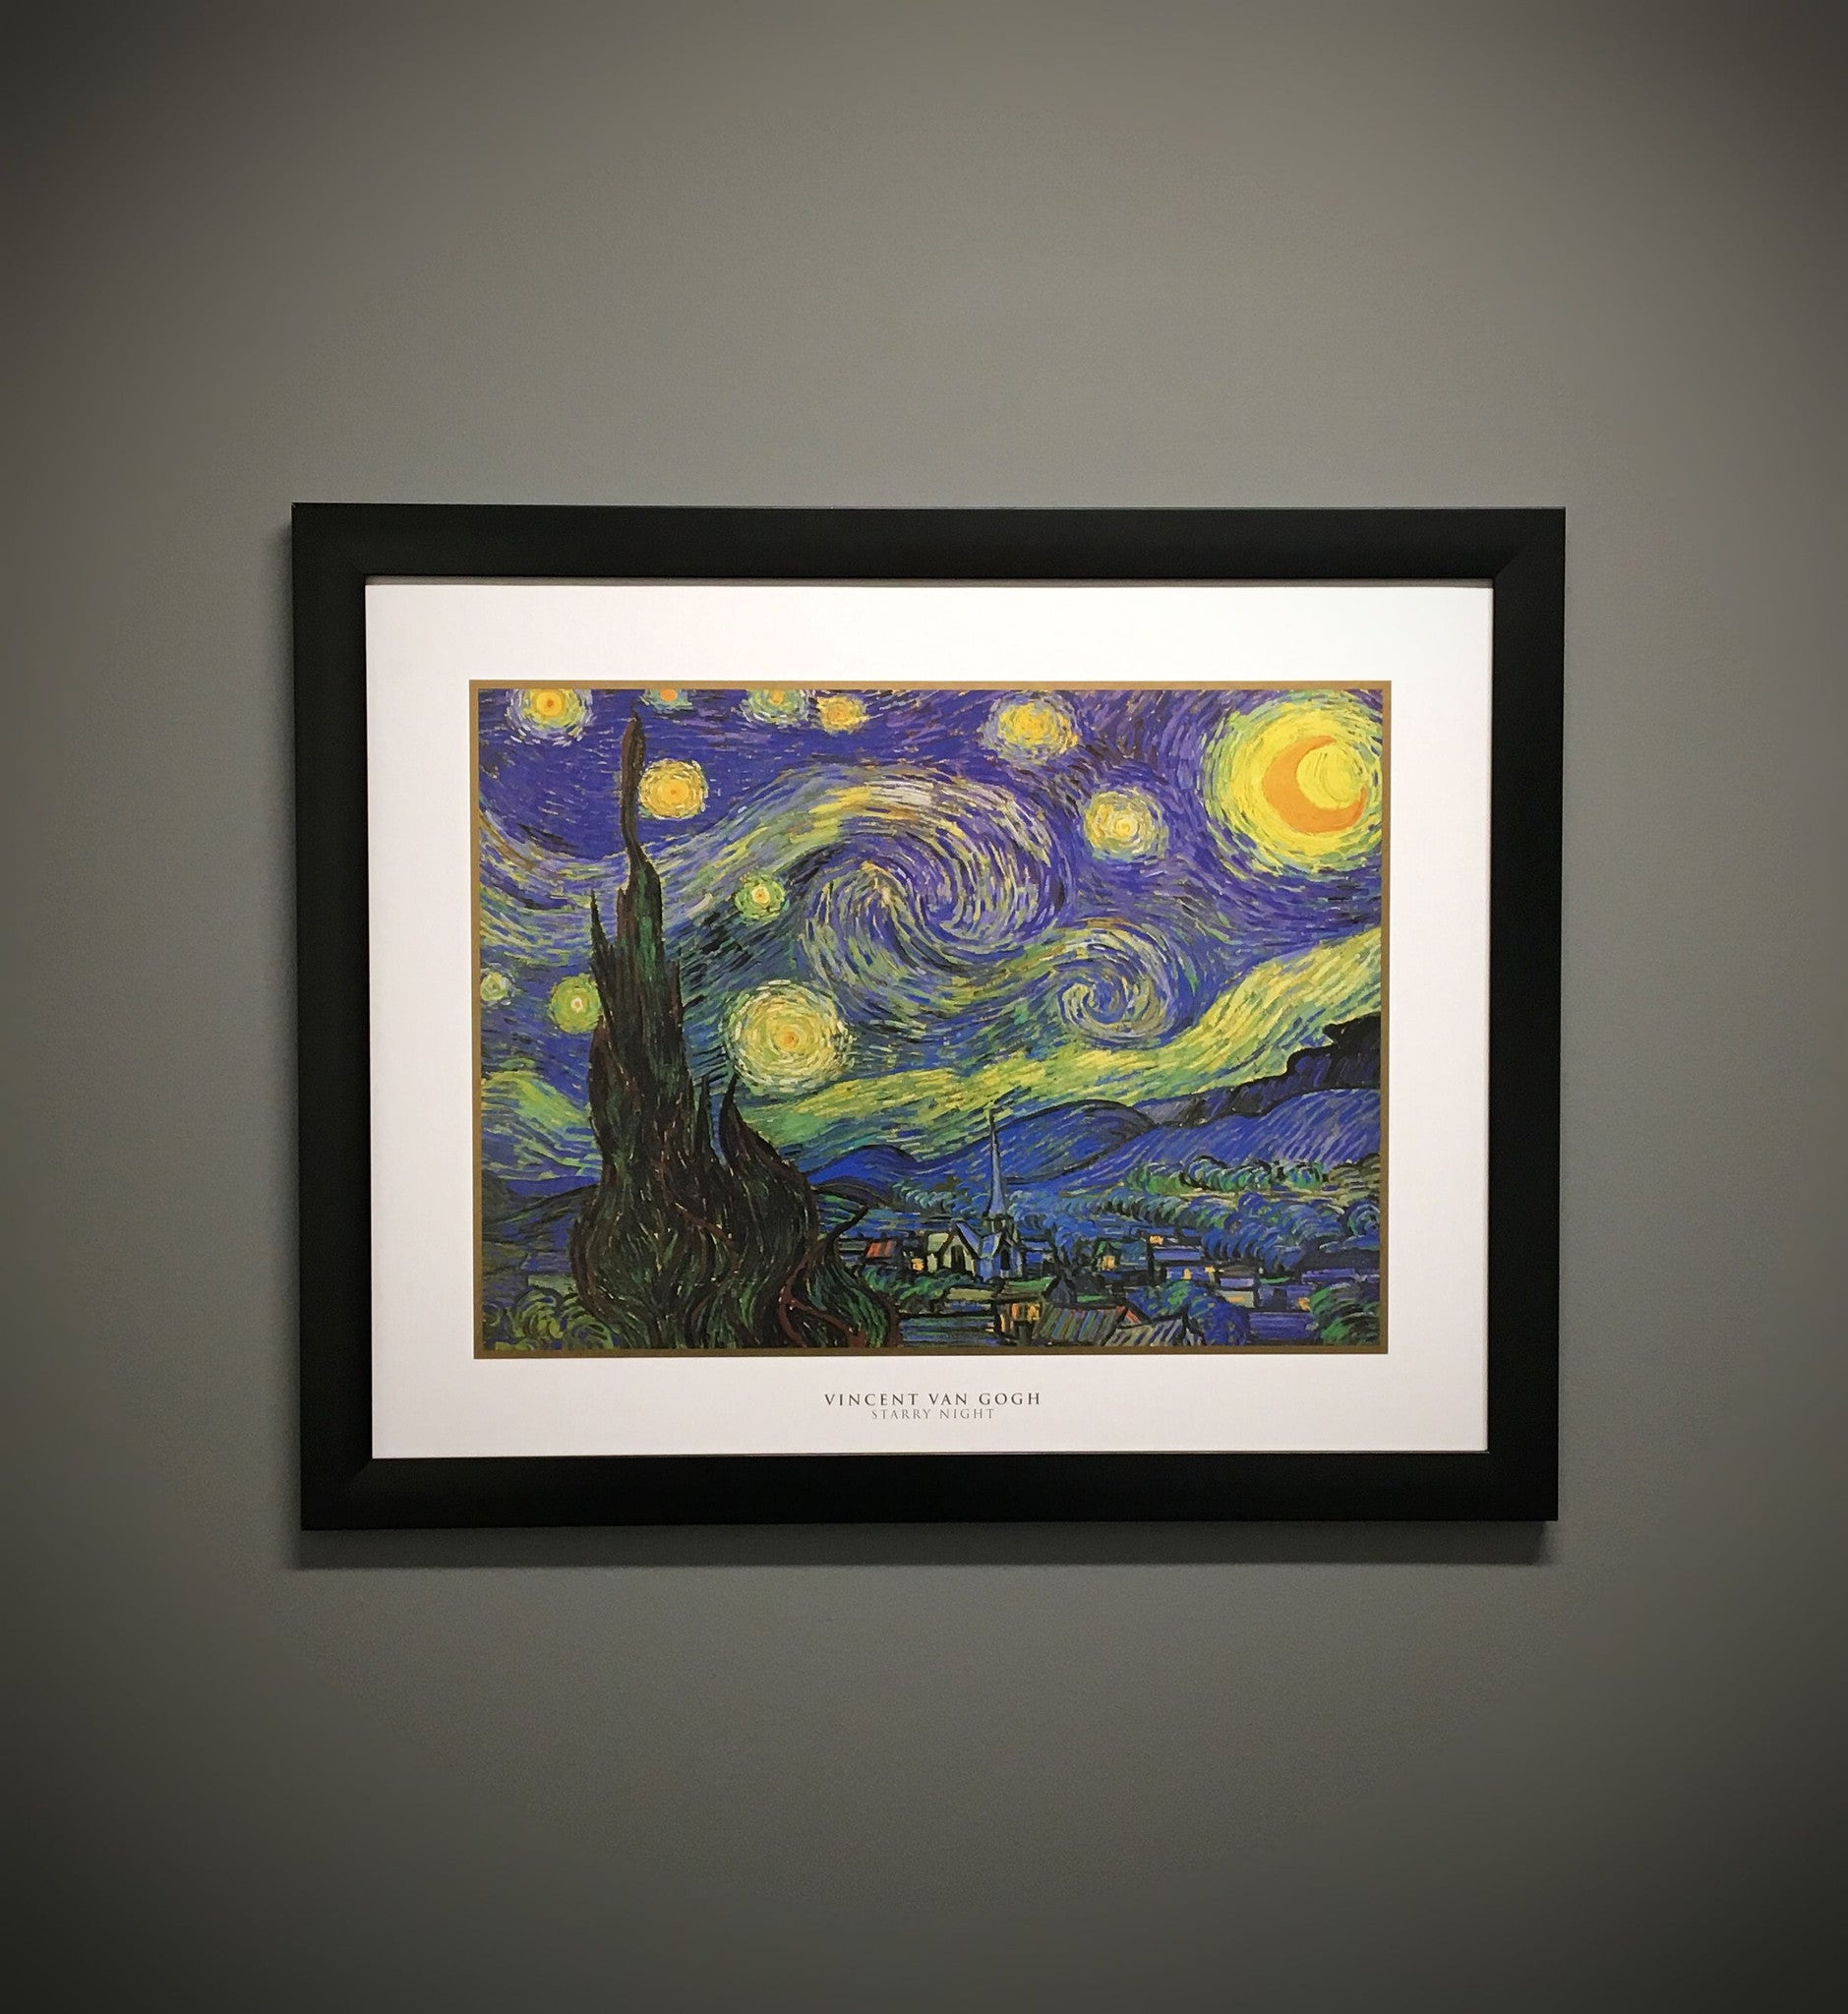 Vincent Van Gogh - Starry Trilogy